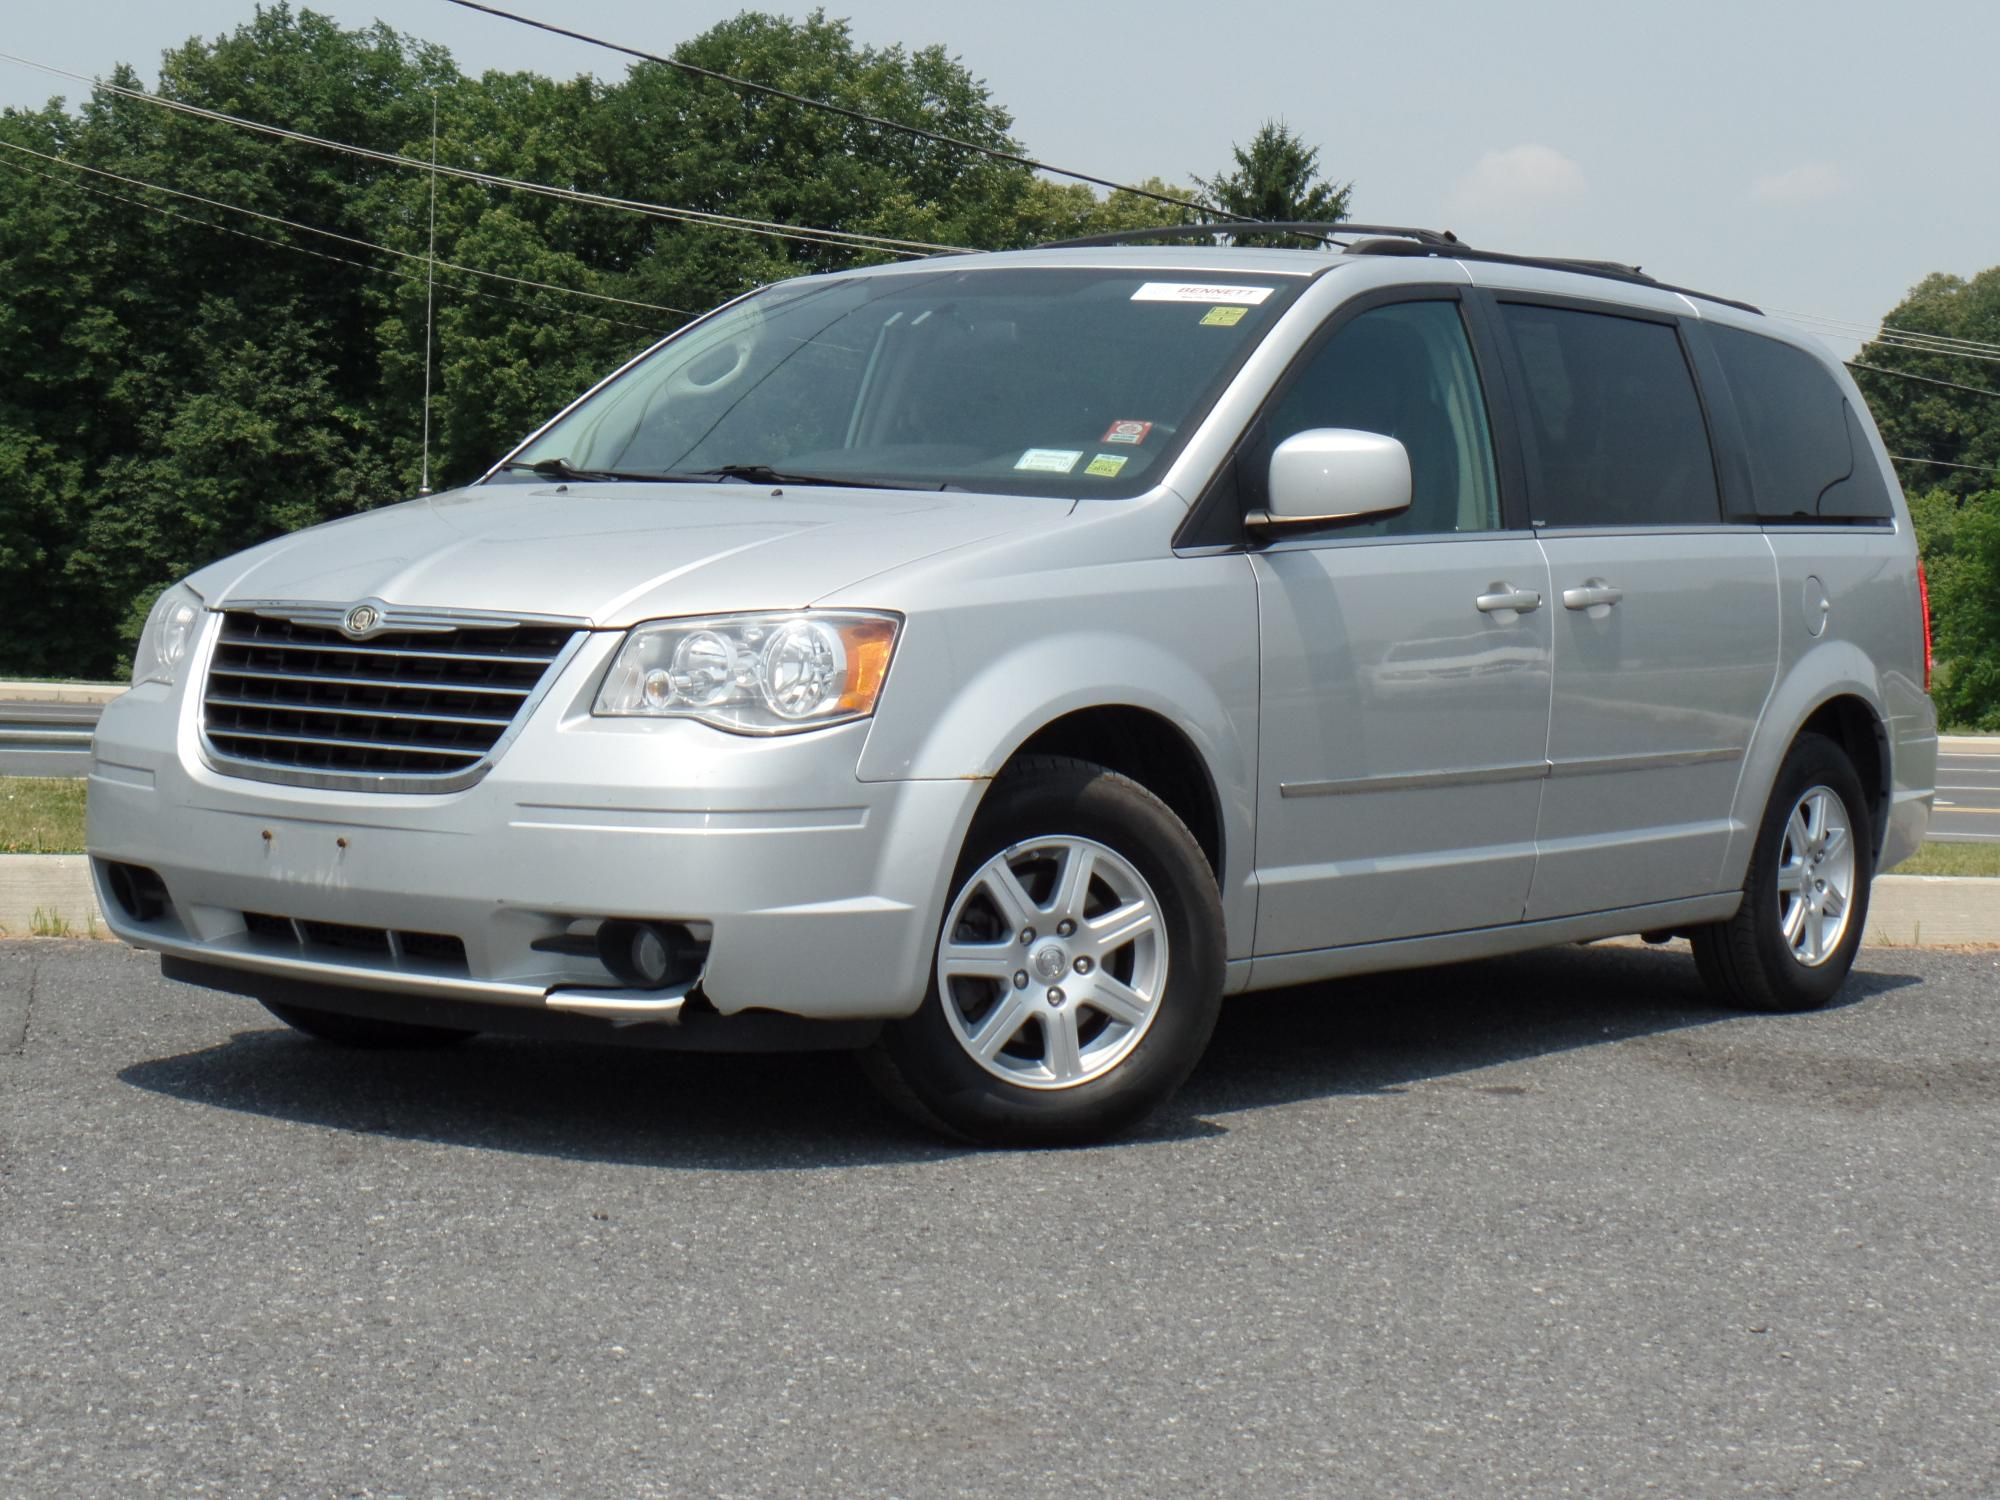 6-18-2018_2010_Chrysler_Town_and_Country_479975__1_.JPG